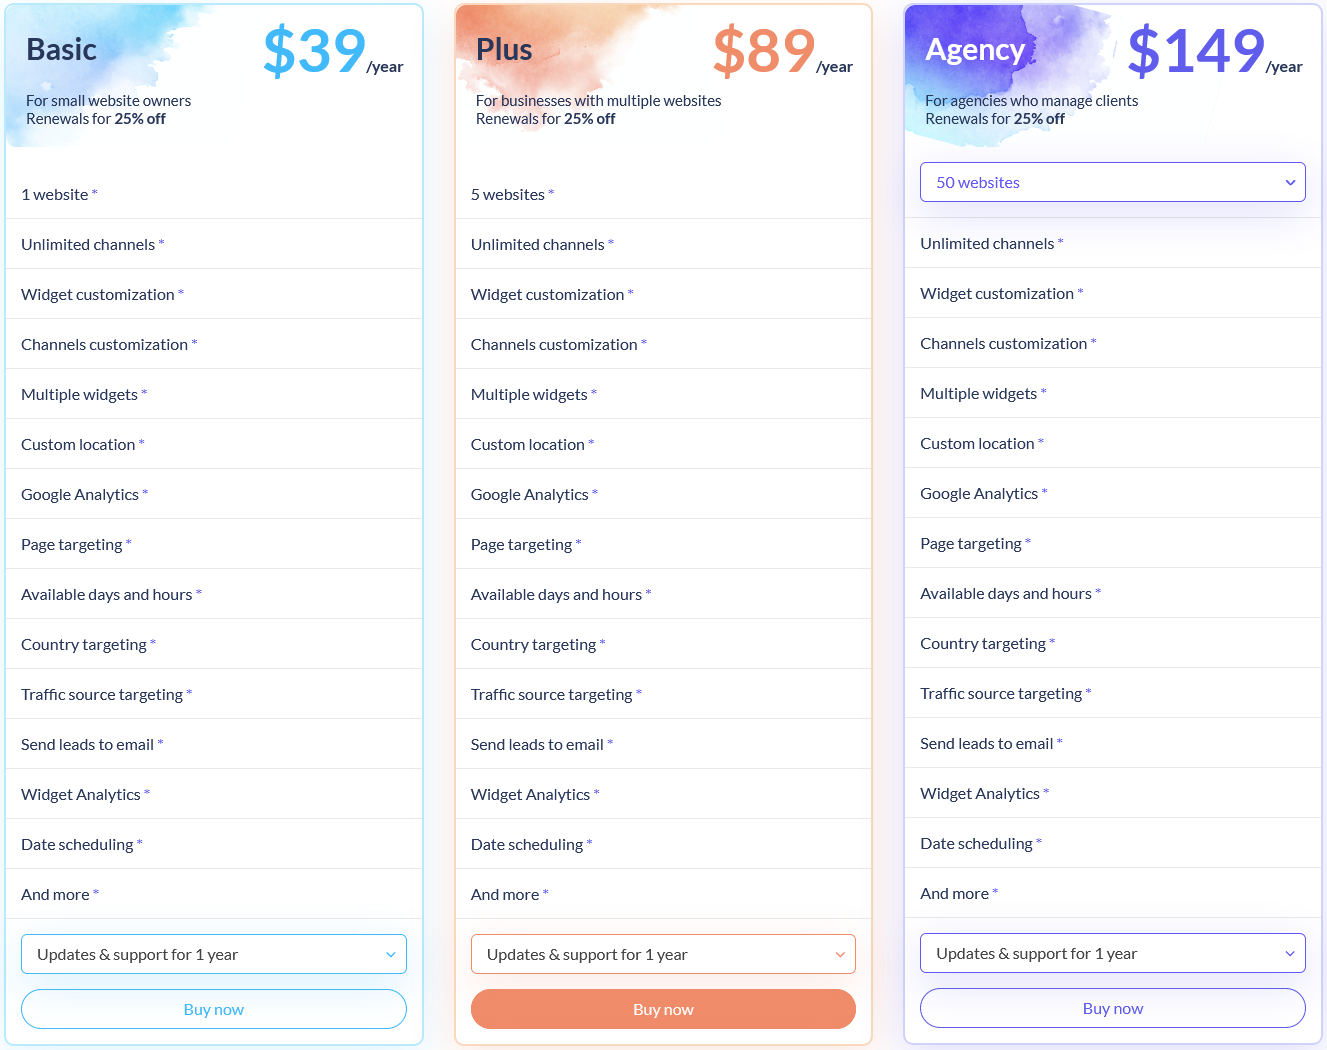 Chaty Pricing